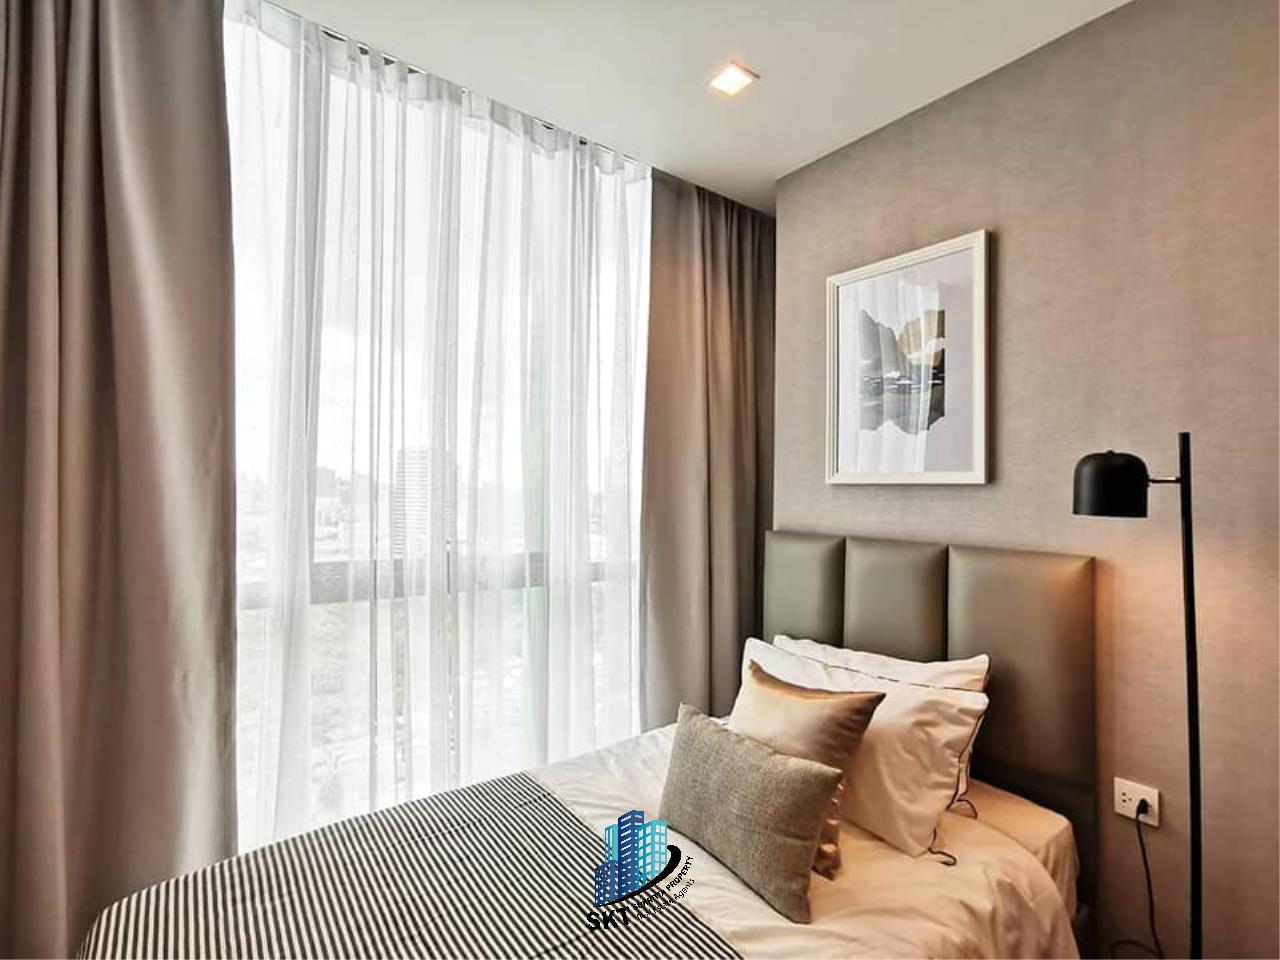 Sukritta Property Agency's WISH SIGNATURE MIDTOWN SIAM CONDO NEAR BTS RATCHATHEWI 8